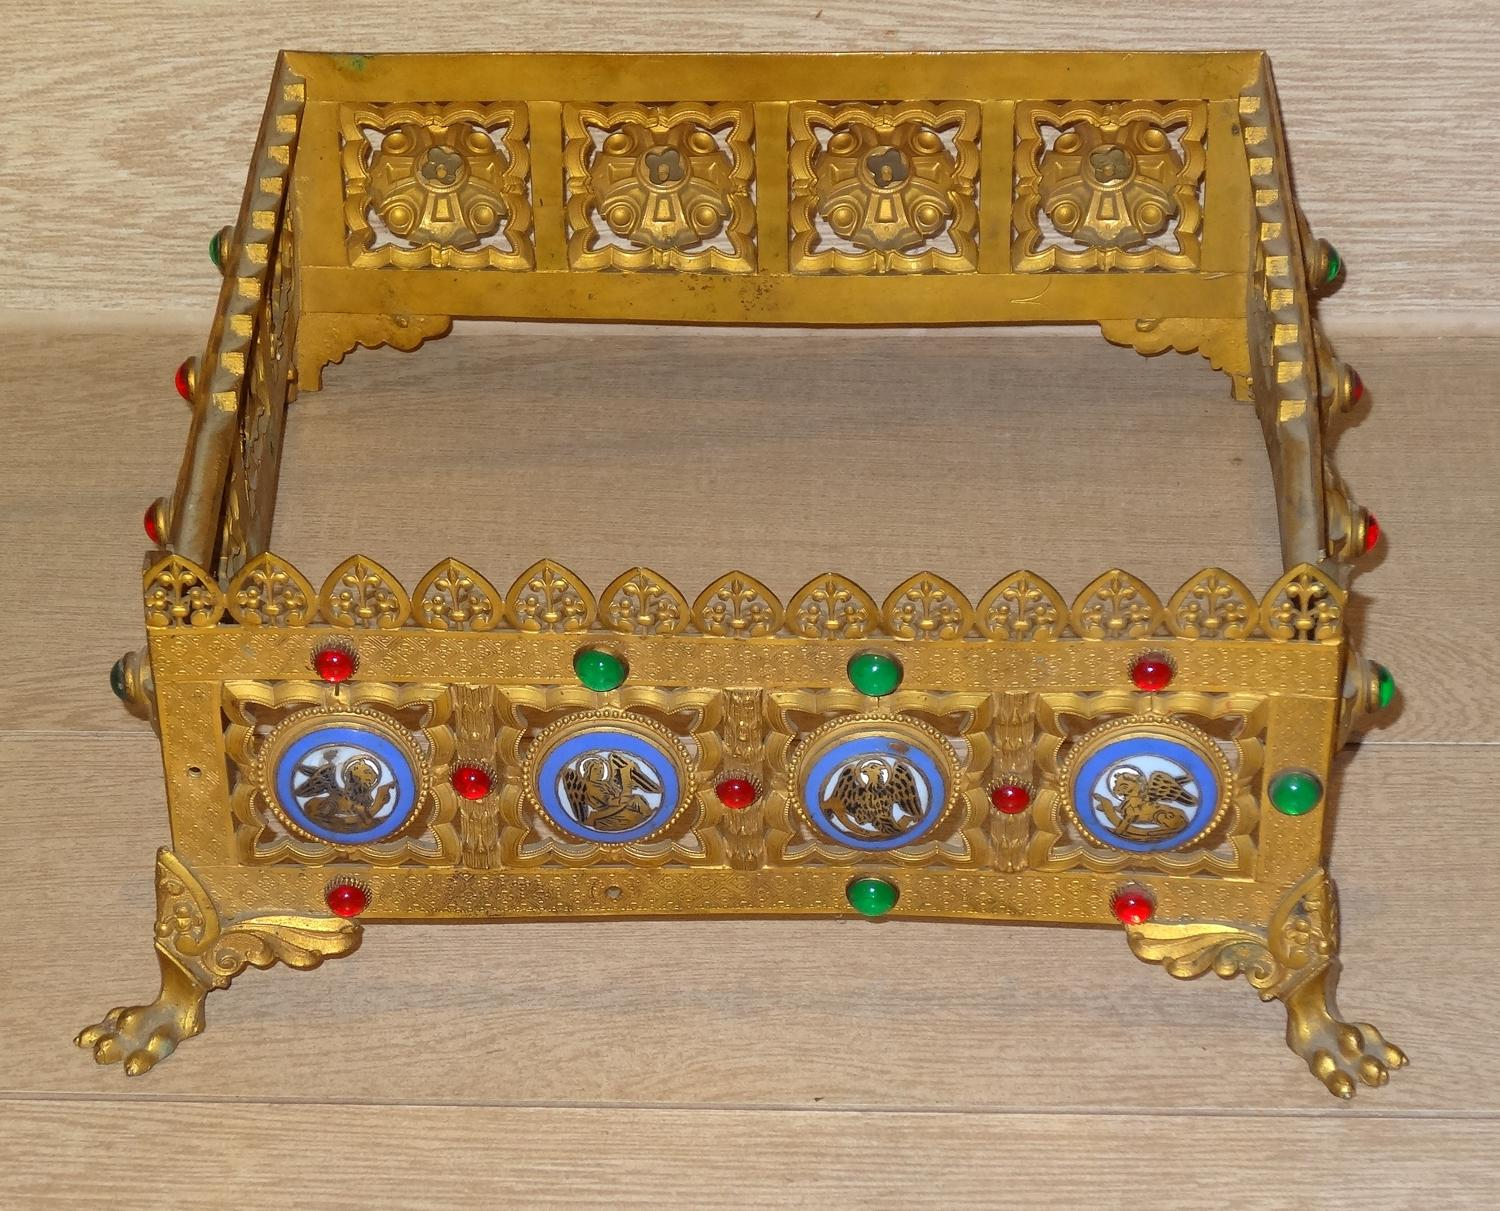 Gothic Revival bejewelled enamelled brass missal stand